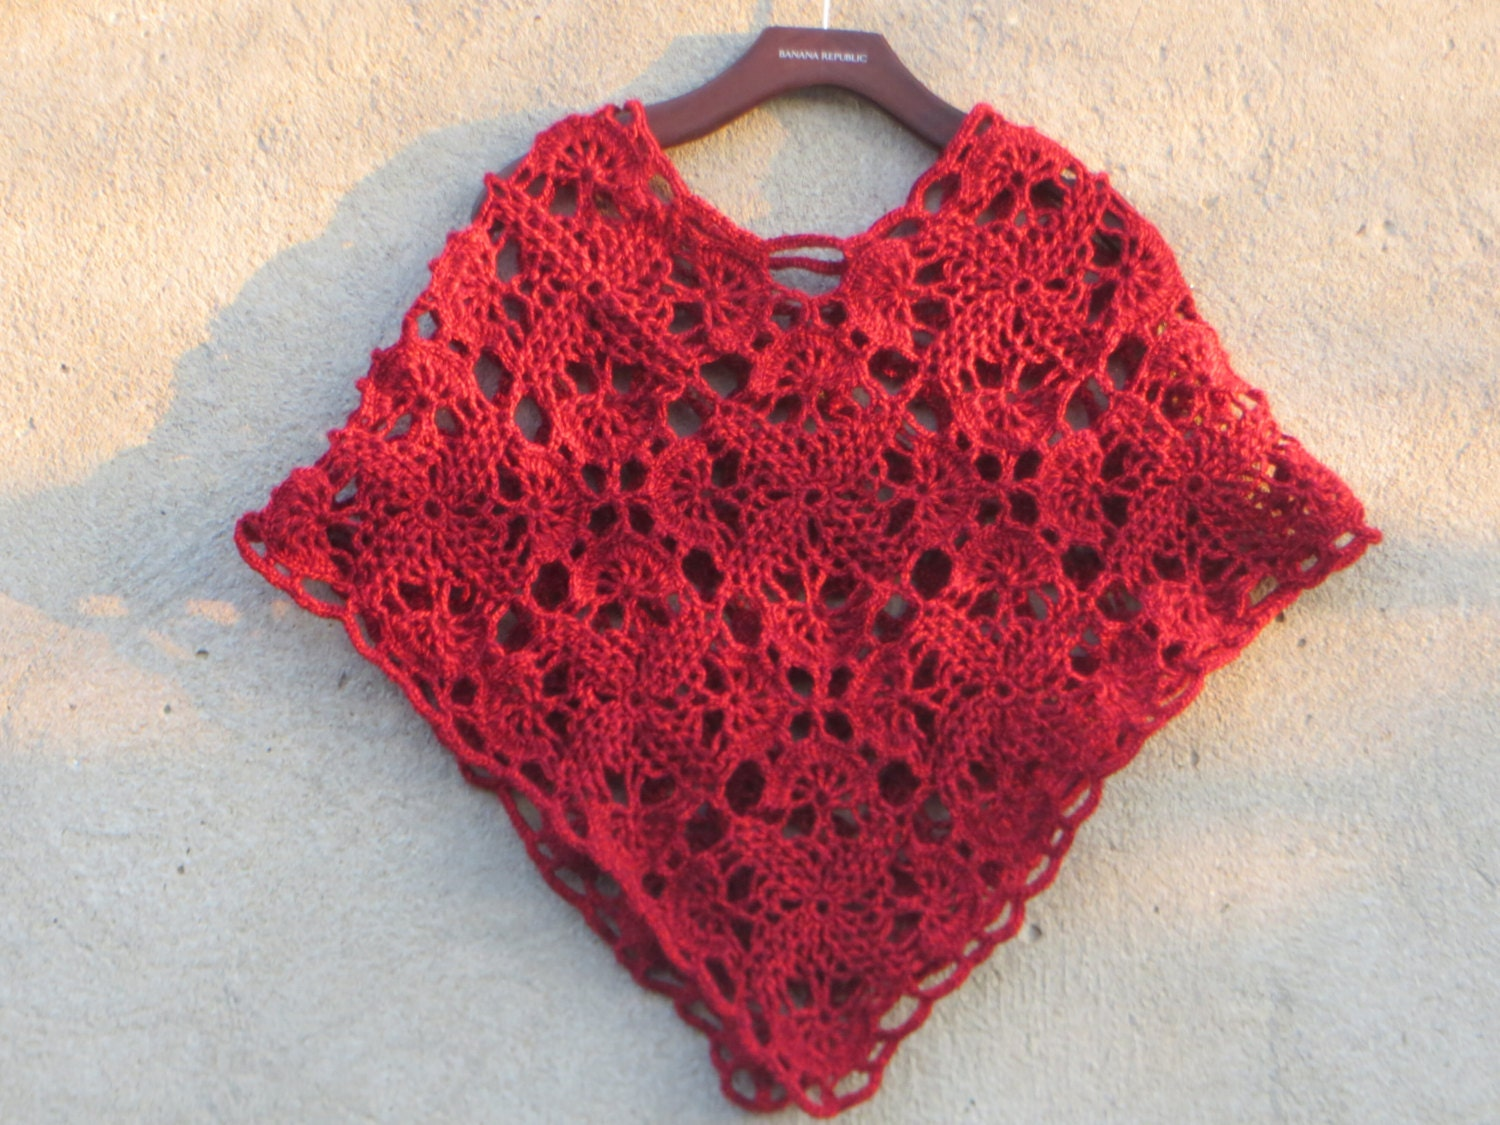 Einfach Poncho Muster Poncho rot Poncho Muster Spitze Poncho